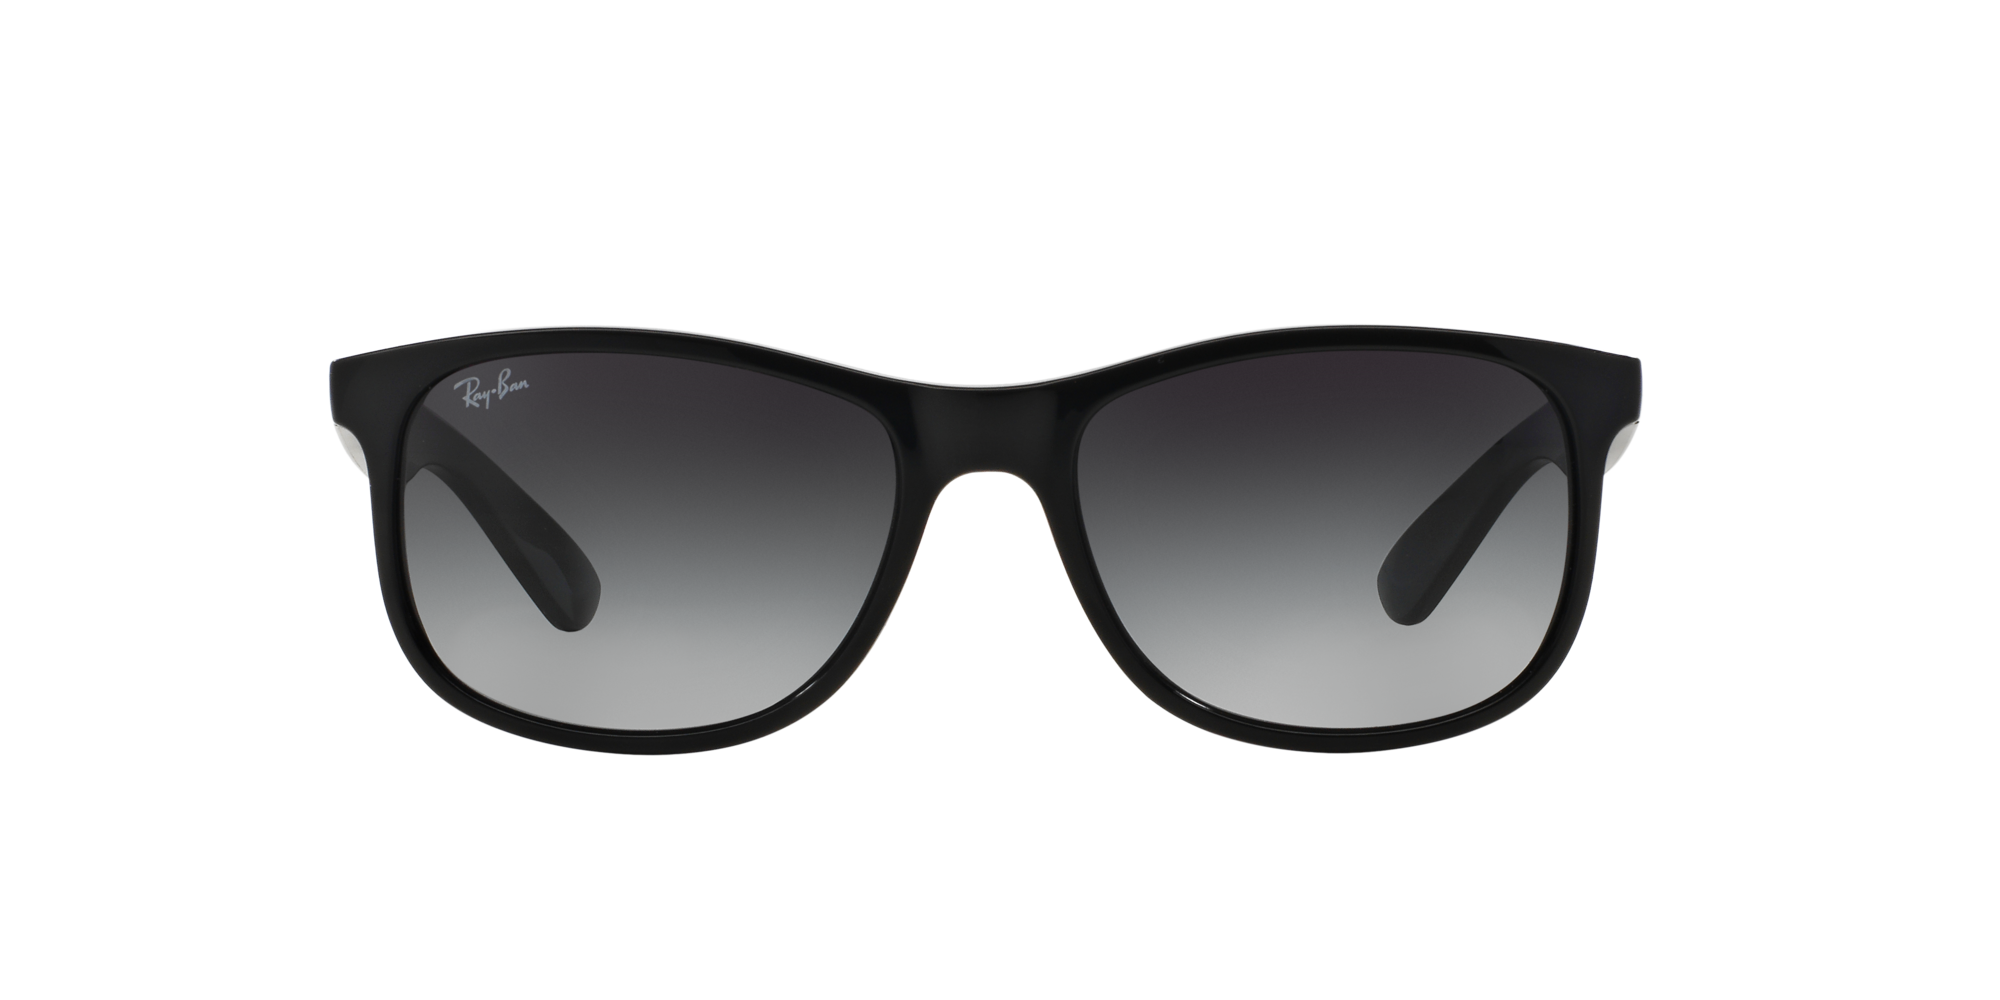 7febd7356f0ef gafas de sol RAY-BAN ANDY RB 4202 601 8G. 360° Product View 360° Product  View ...